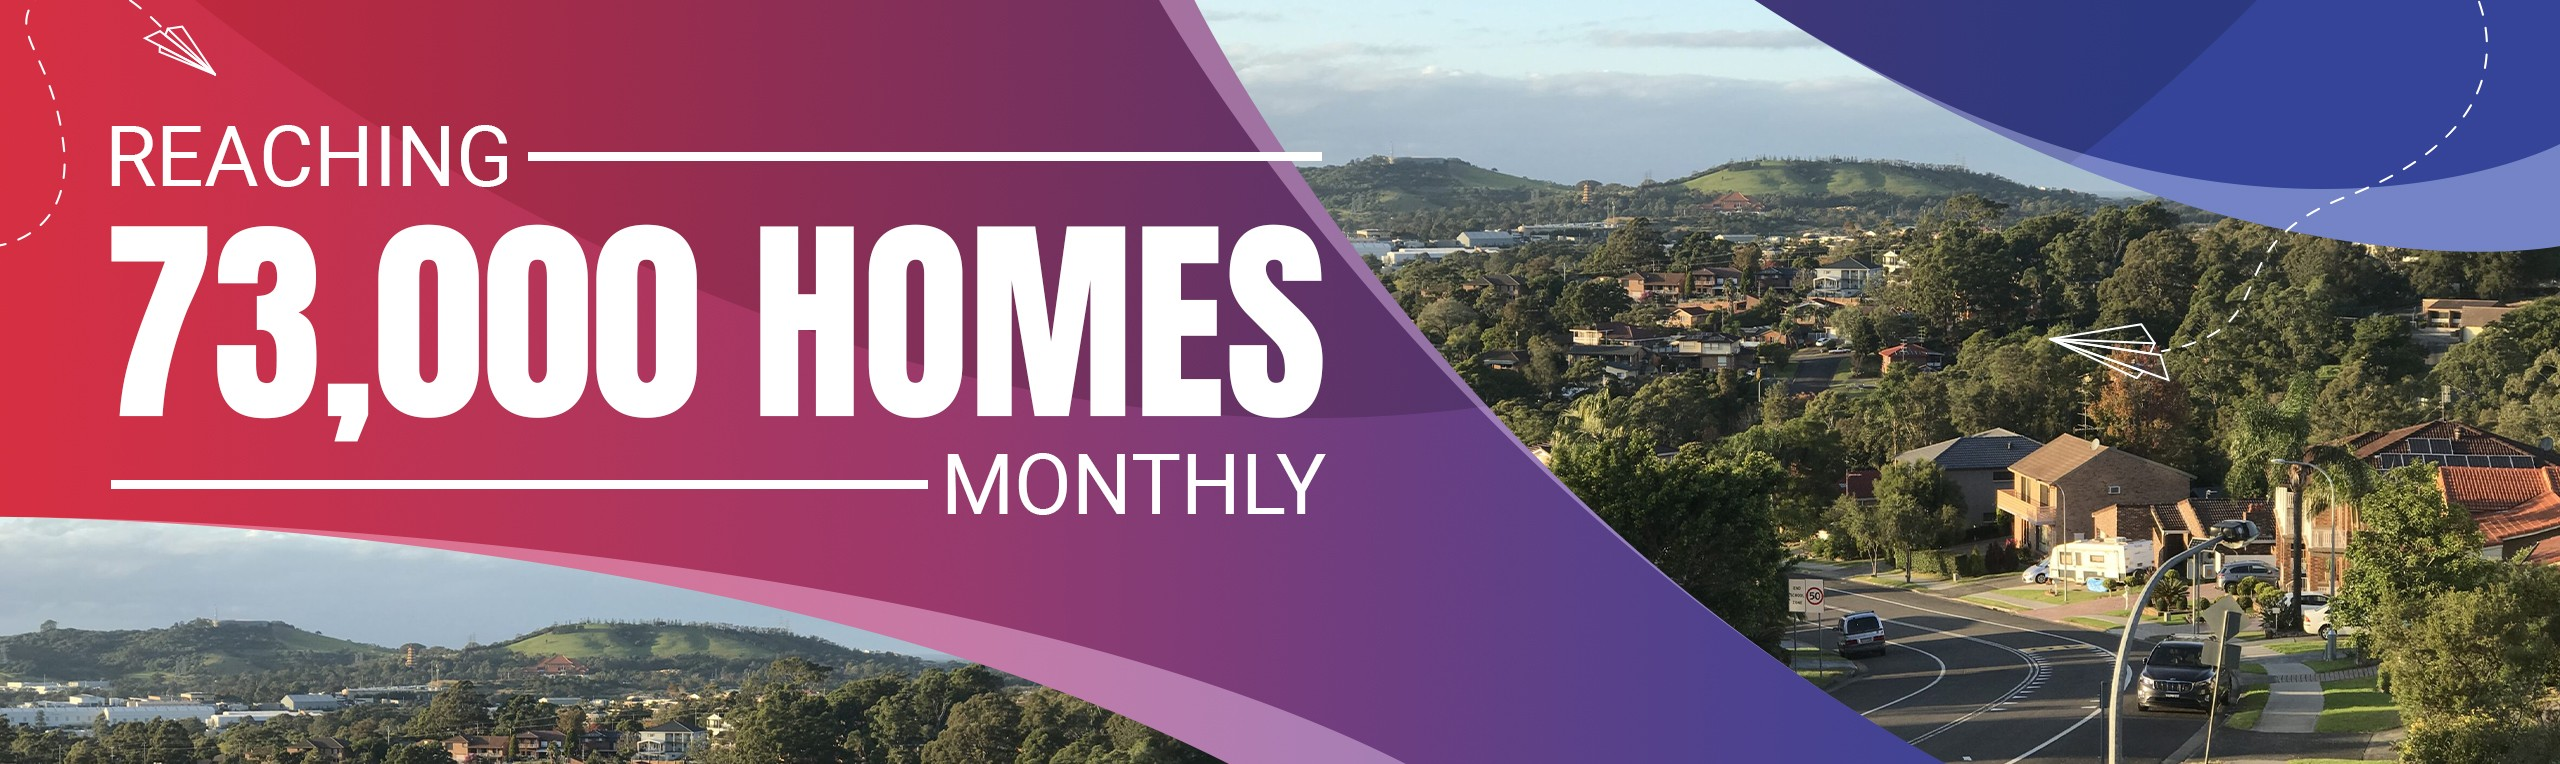 Reaching 73,000 Homes Monthly Web Banner-v1